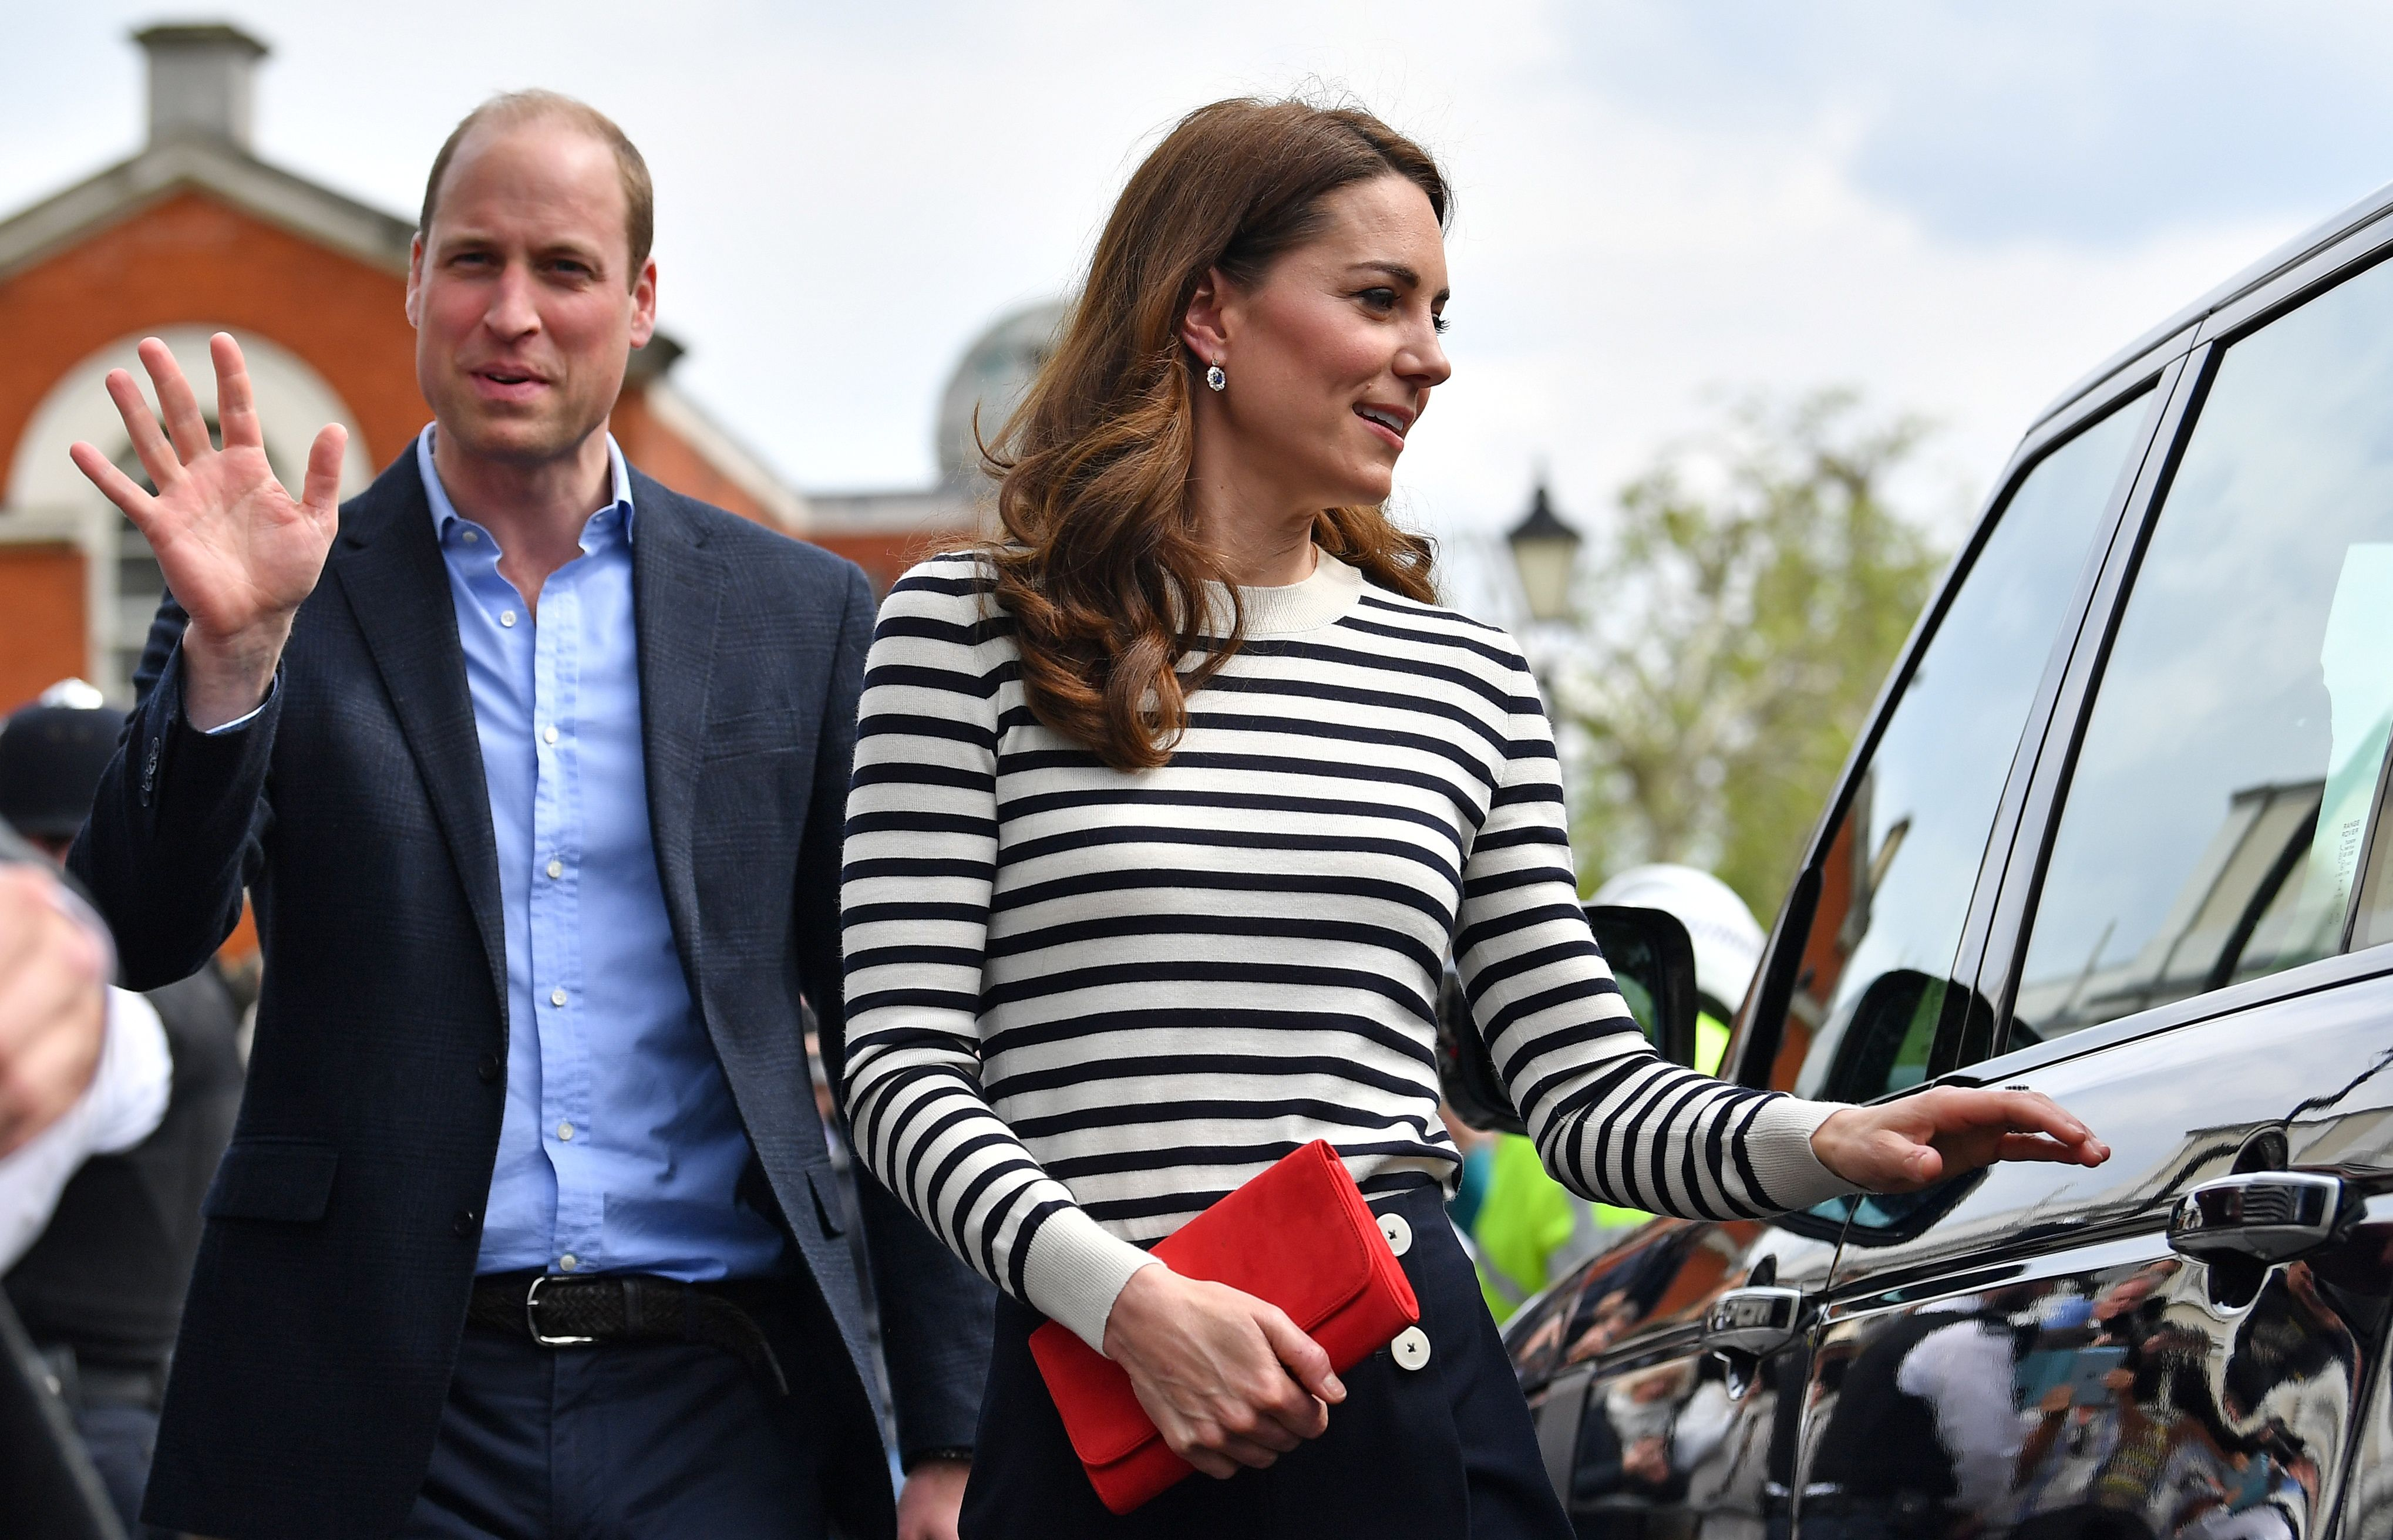 Kate Middleton, Prince William, and Their Family Were Just Spotted on a Commercial Flight